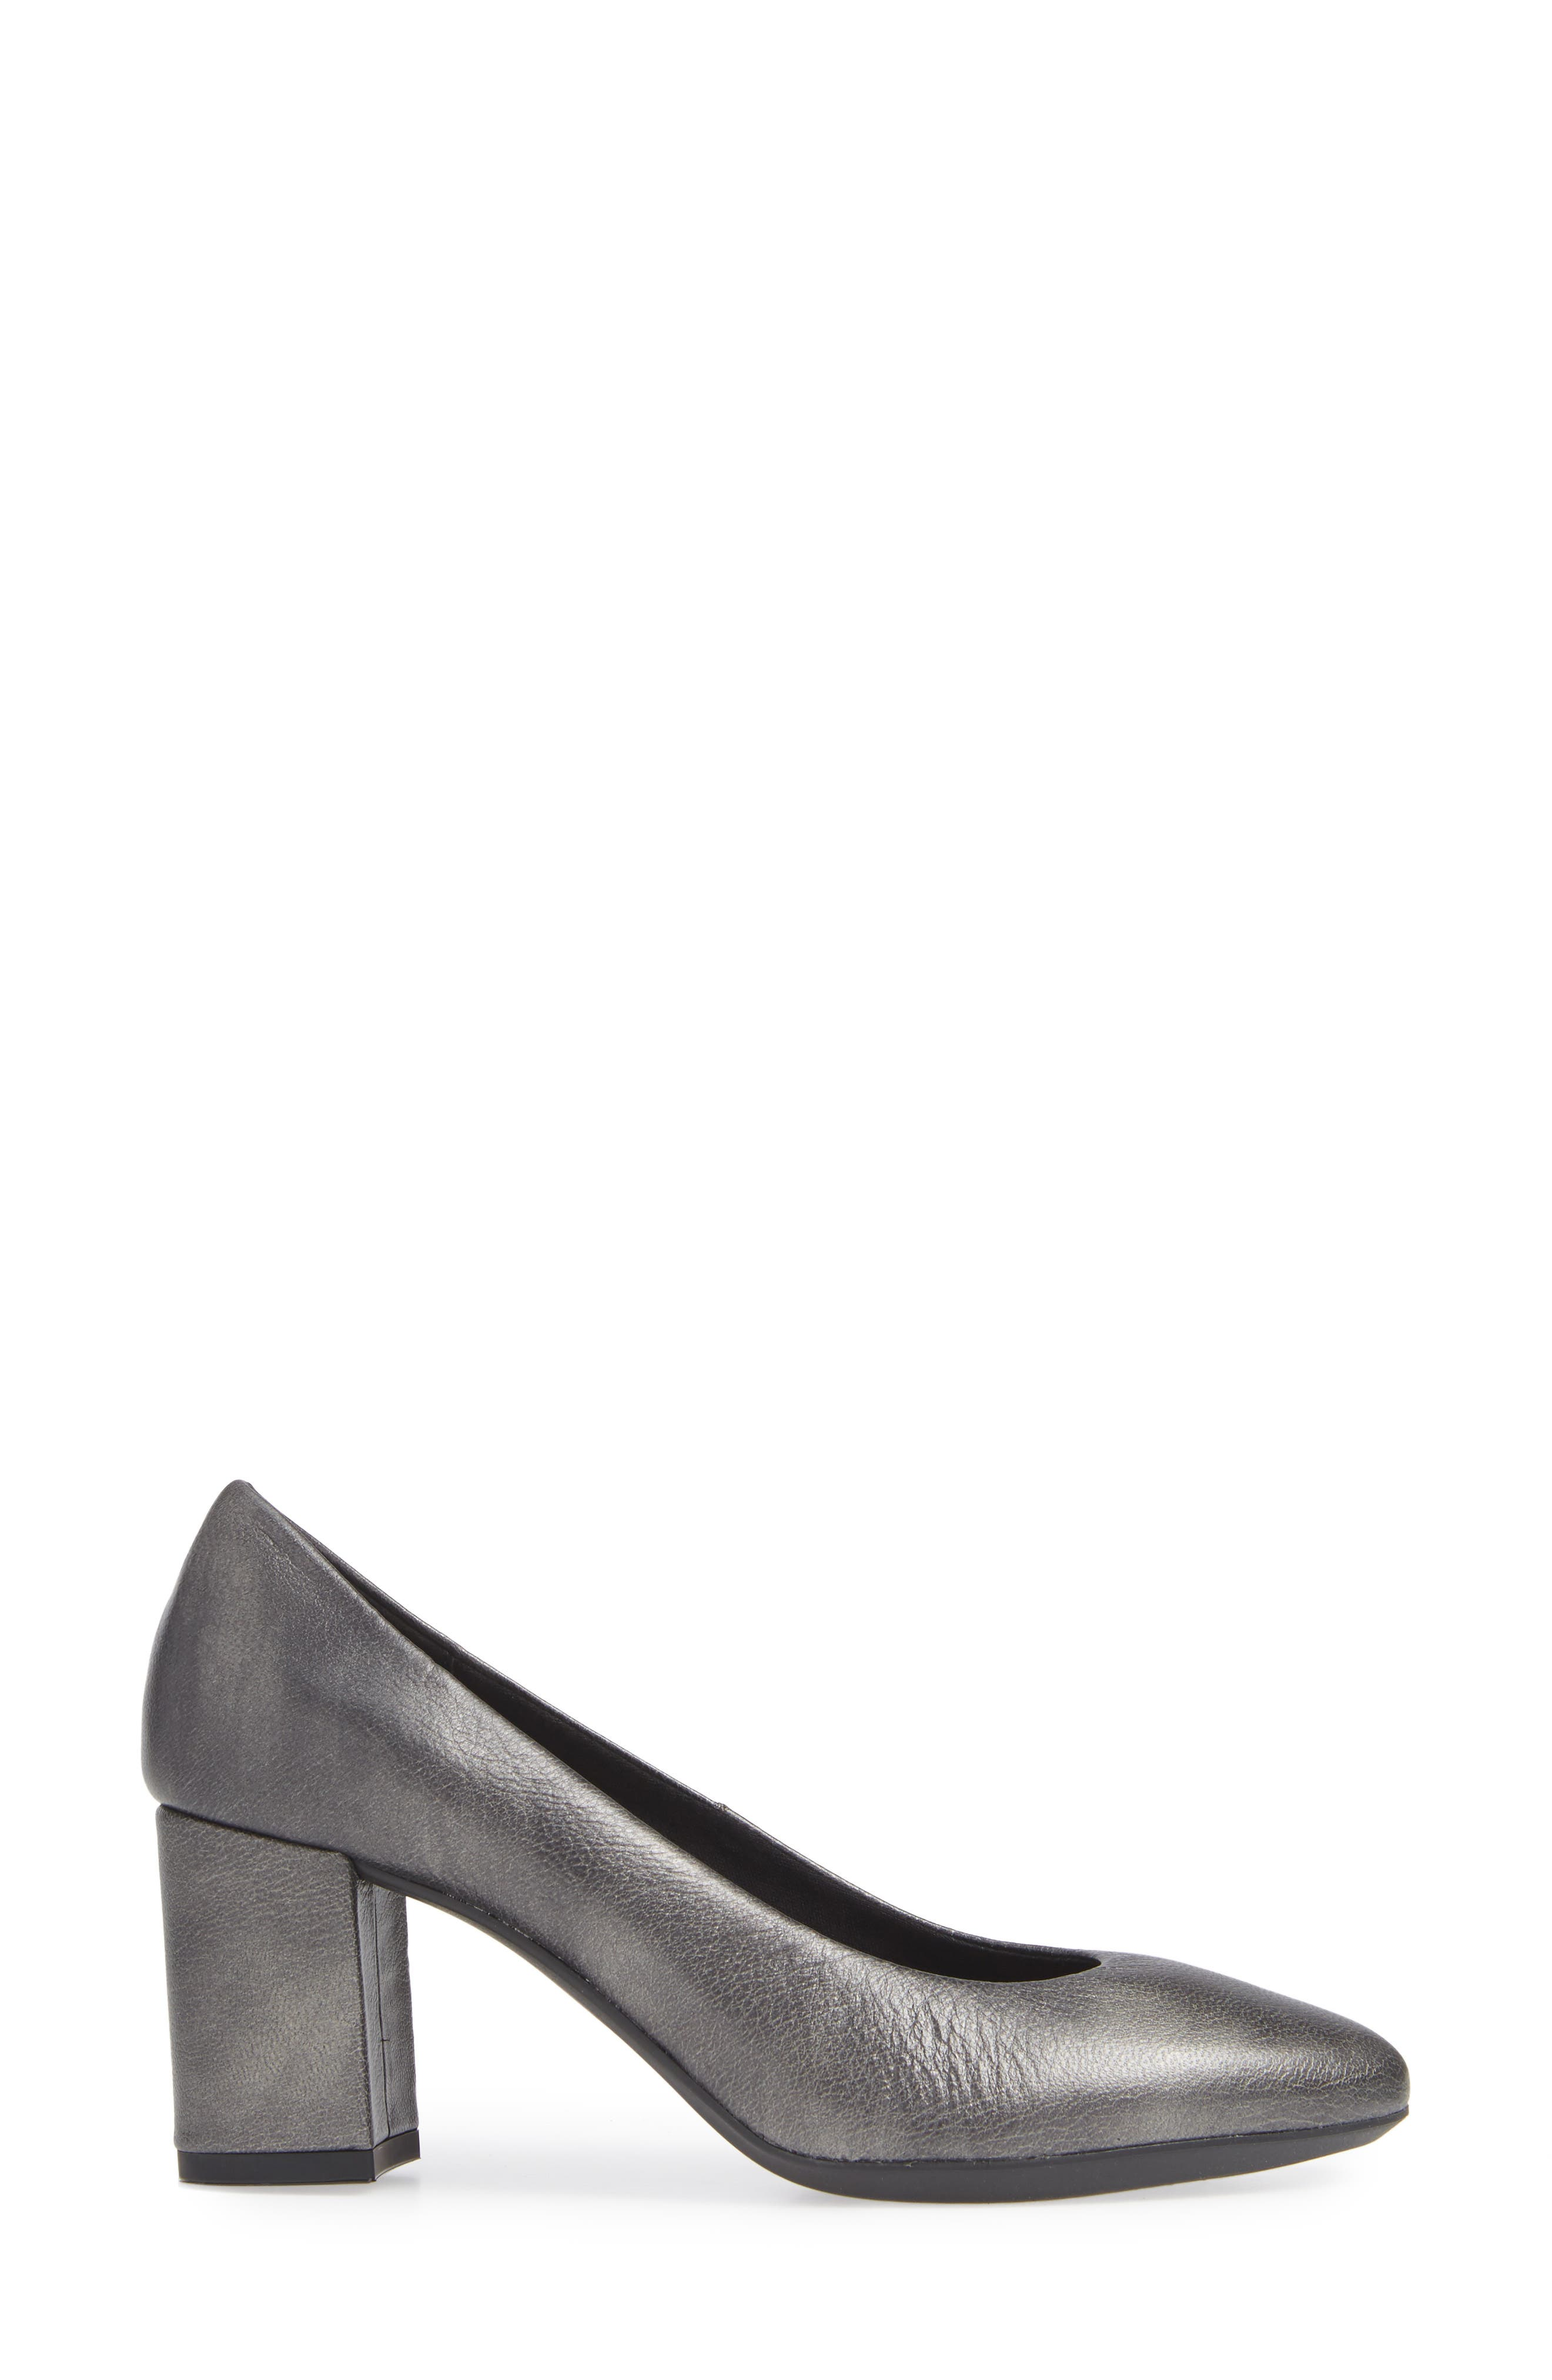 ,                             Seriously Pump,                             Alternate thumbnail 3, color,                             GREY LEATHER